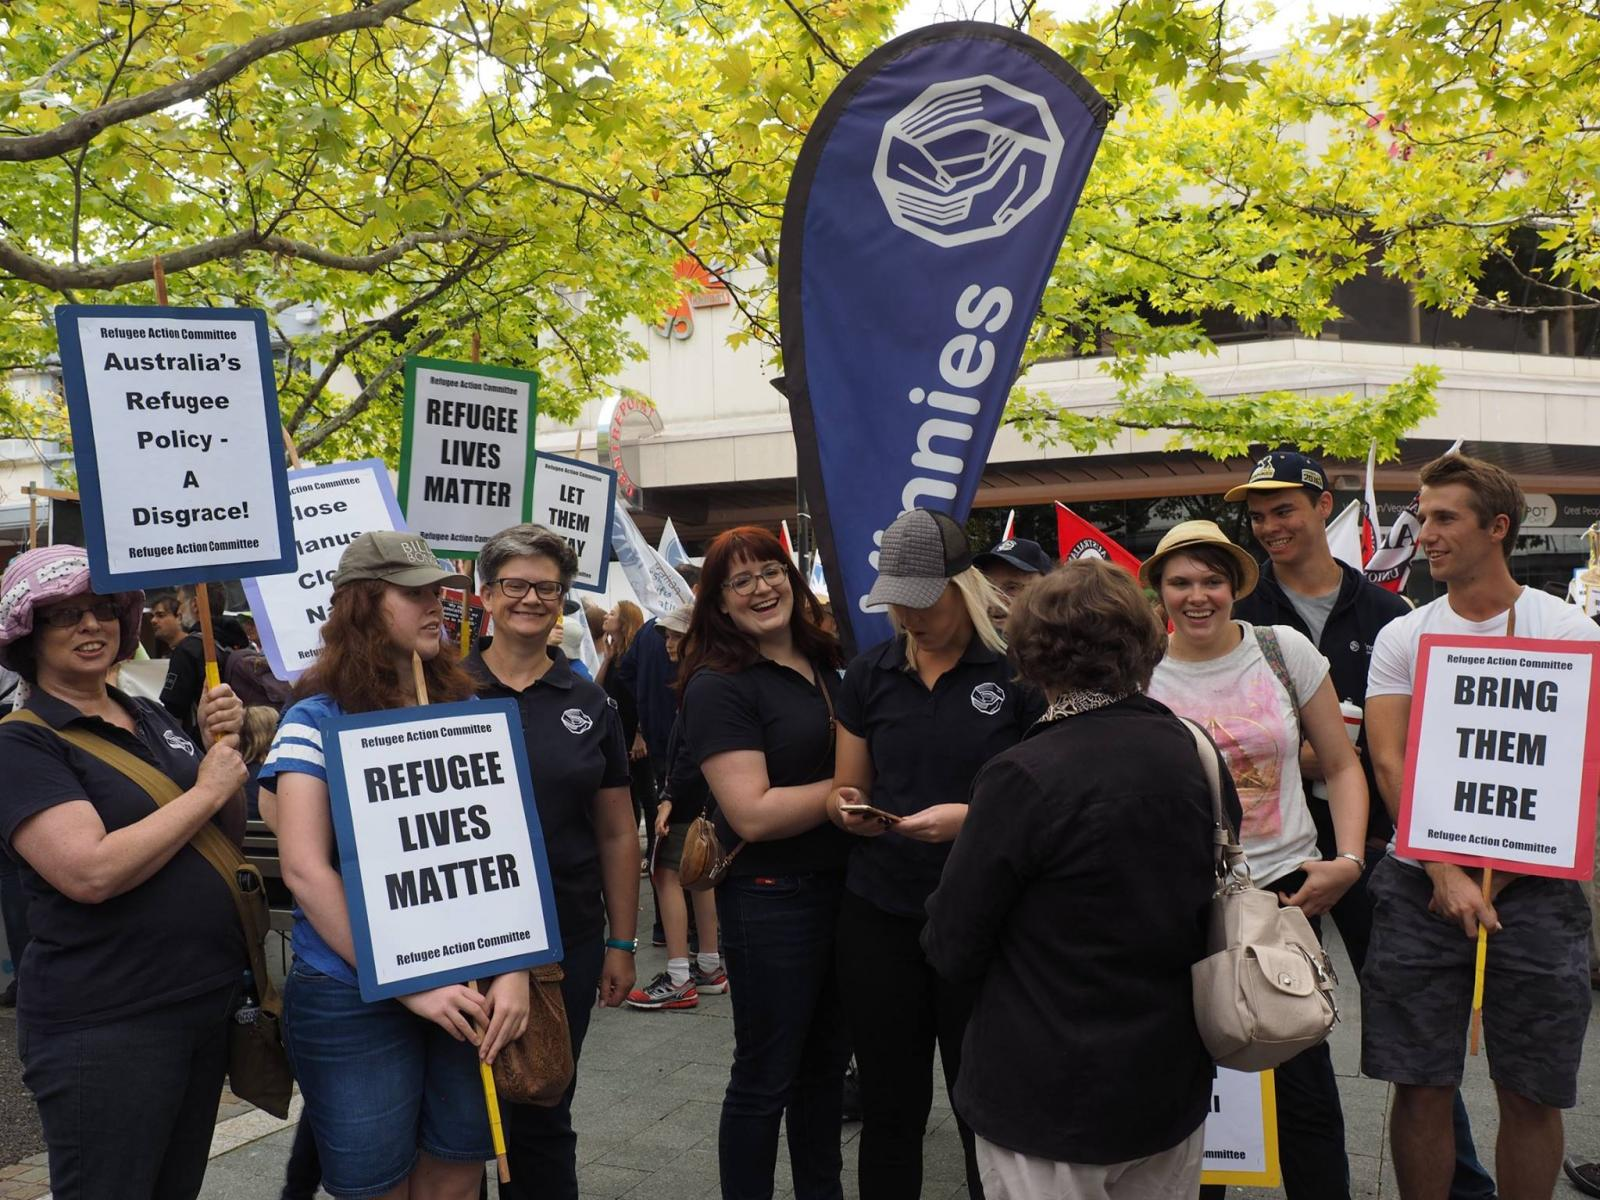 Supporters of the St Vincent de Paul Society in Canberra marched for refugees at a Palm Sunday Rally.